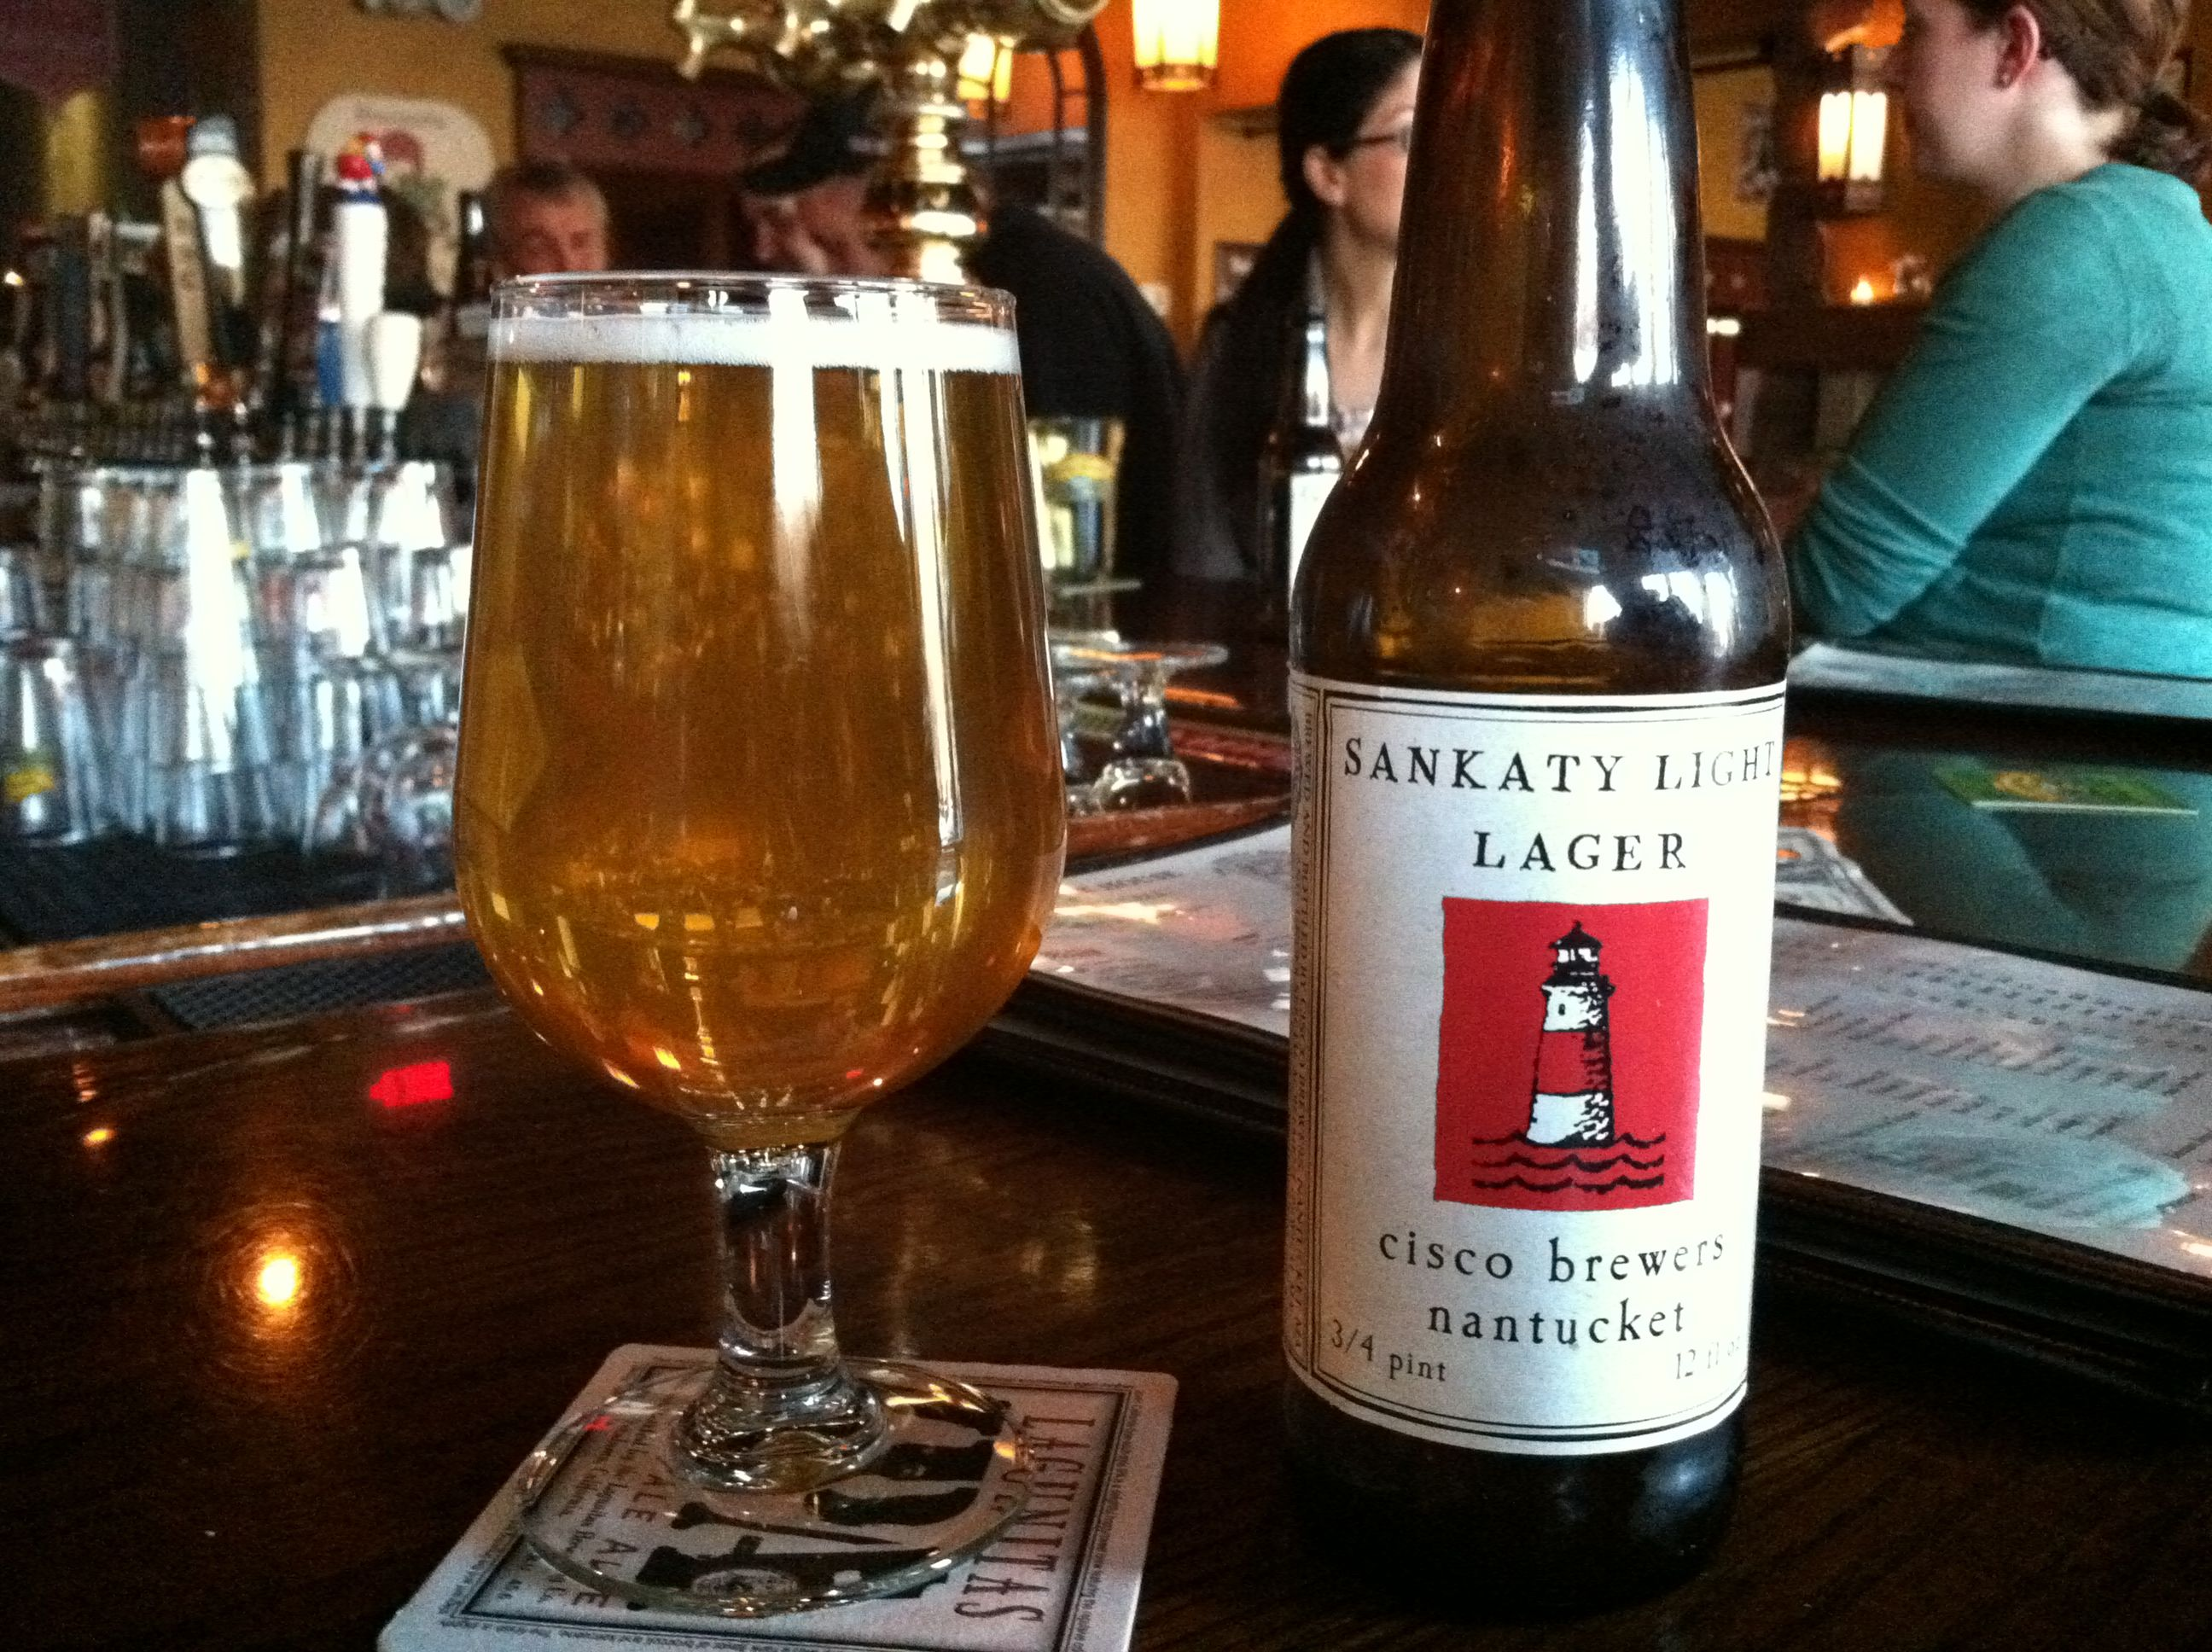 Sankaty Light...Ahhhh, only to be at the brewery...very soon...